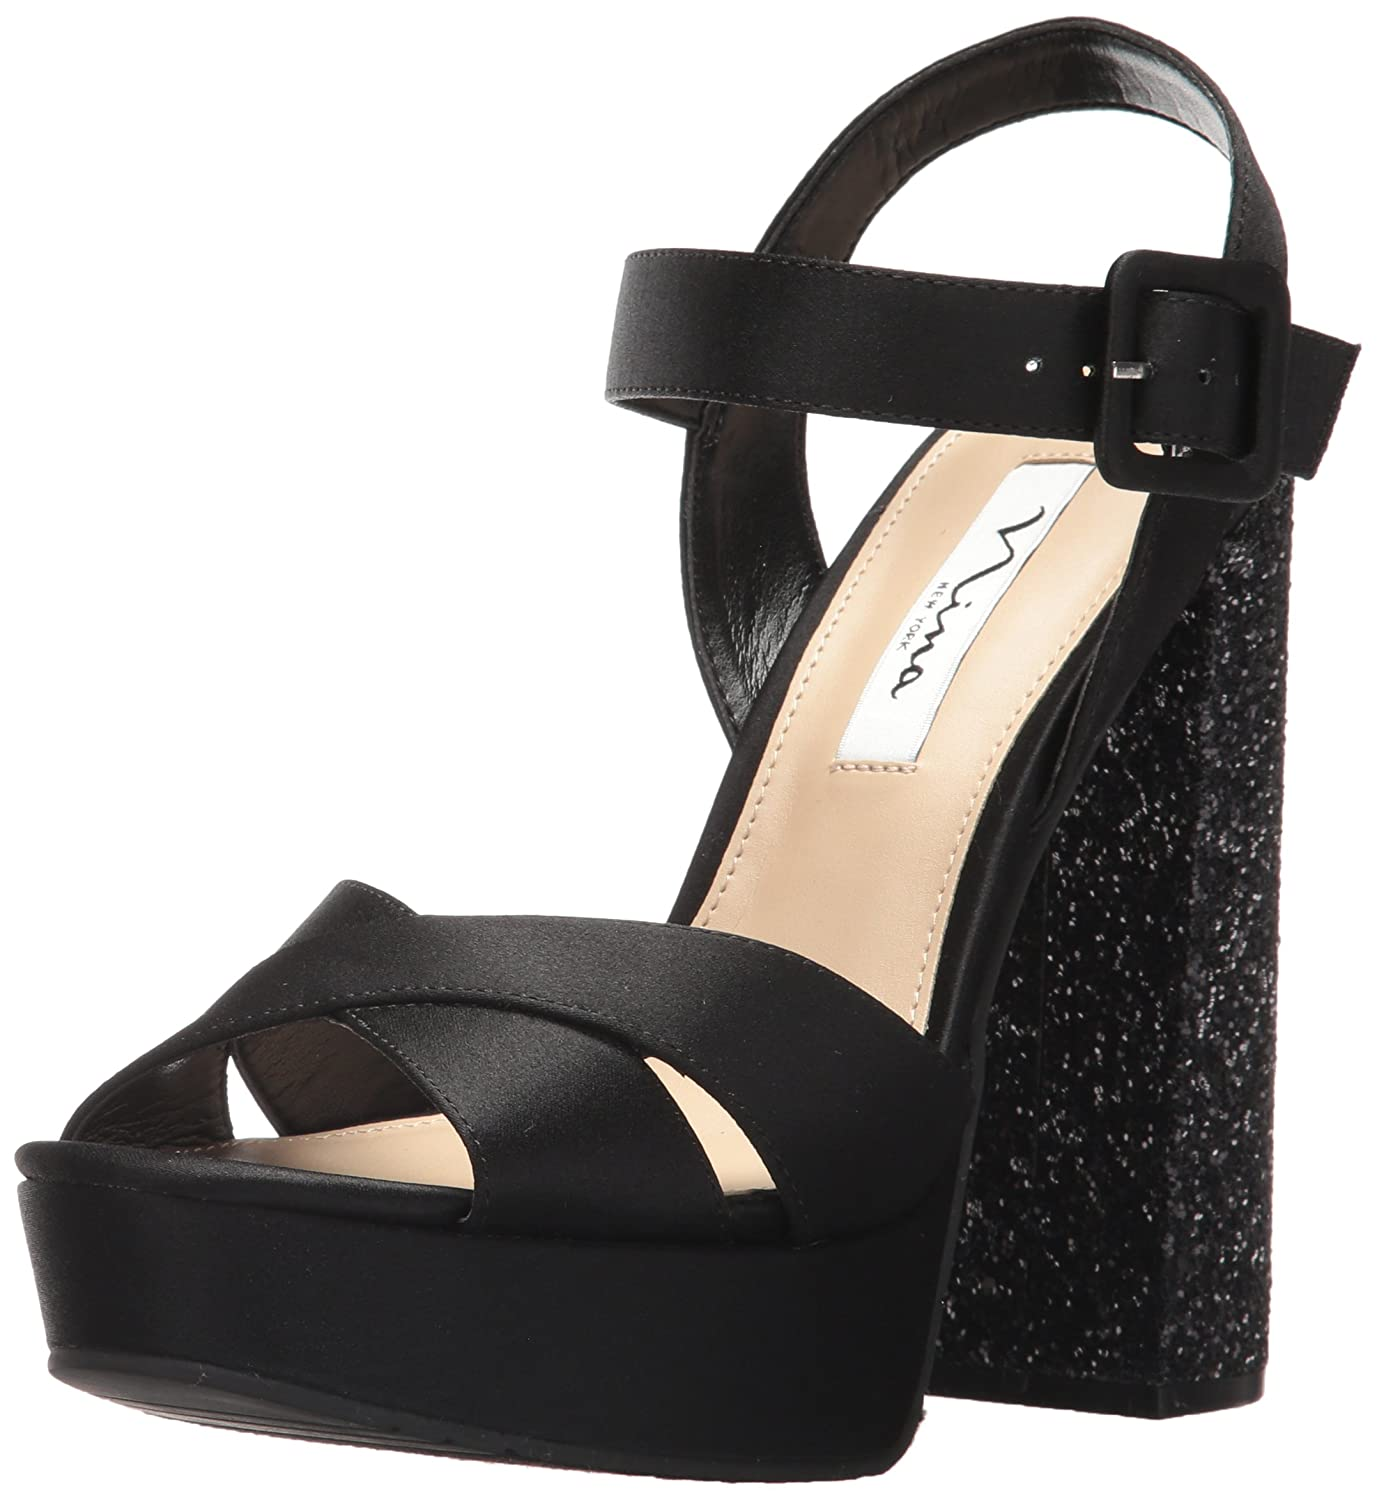 Nina Women's Savita Platform Dress Sandal B071F88NG3 9 B(M) US|Ls-black